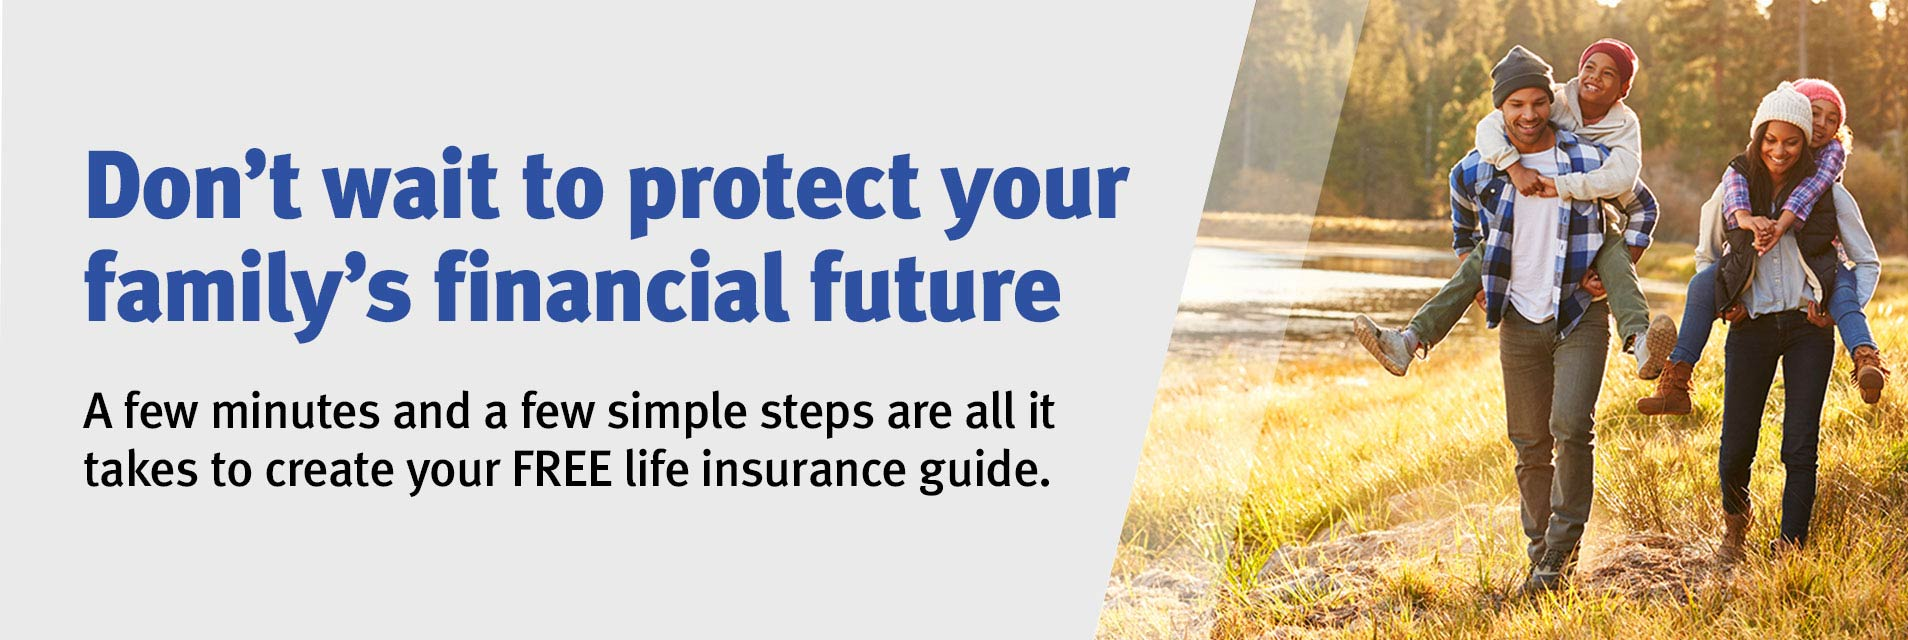 Don't wait to protect your family's financial future. A few minutes and a few simple steps are all it takes to create your FREE life insurance guide.